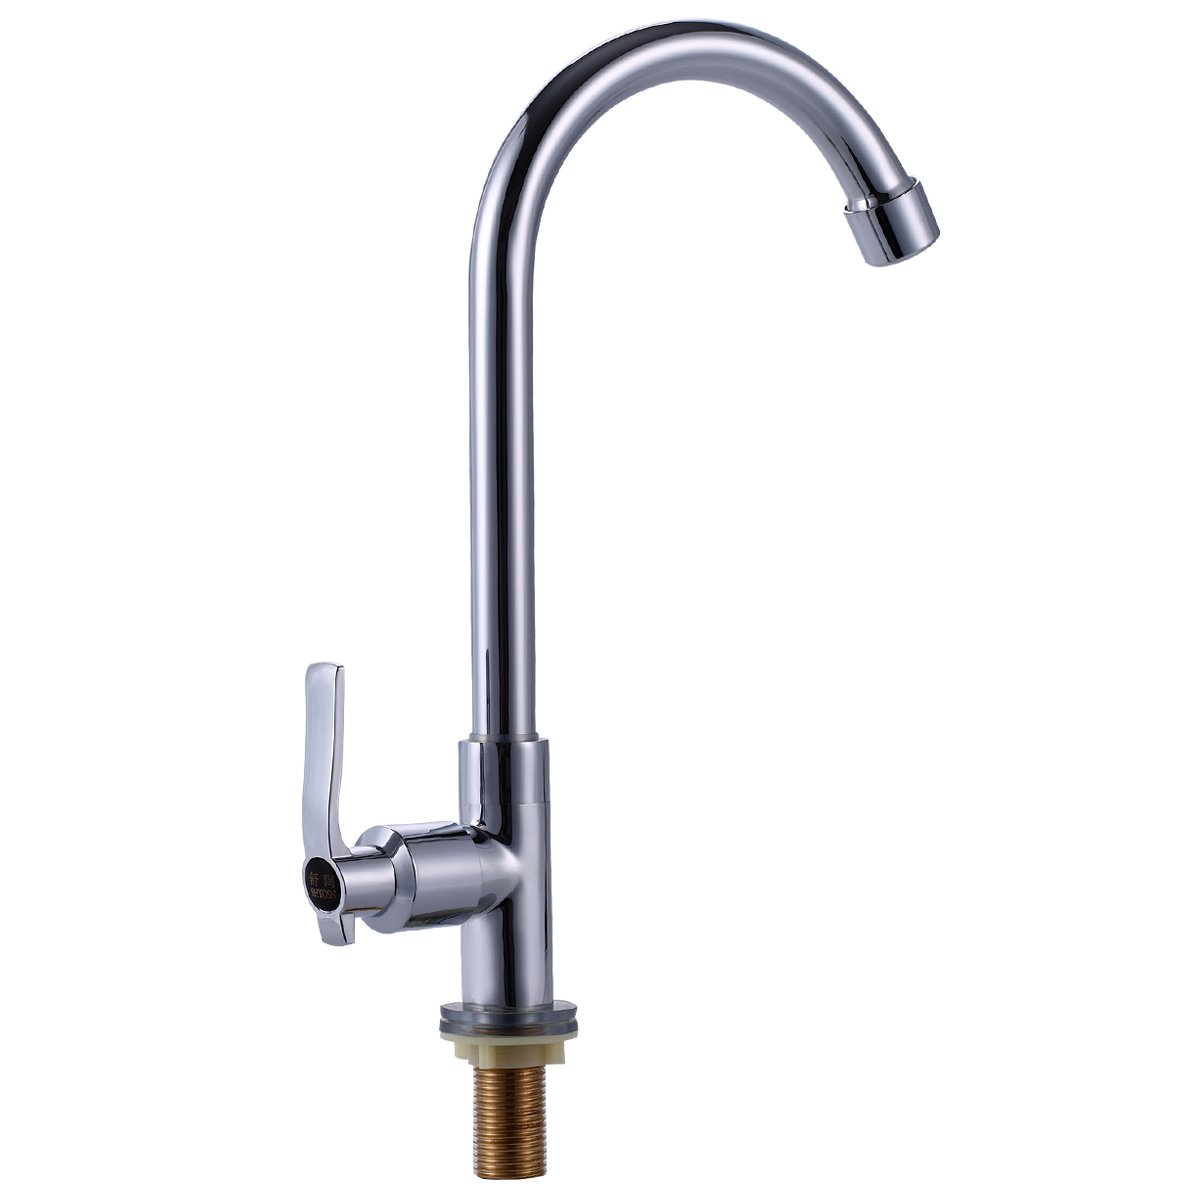 Easy Install Kitchen Faucet Deck Mount Full Copper